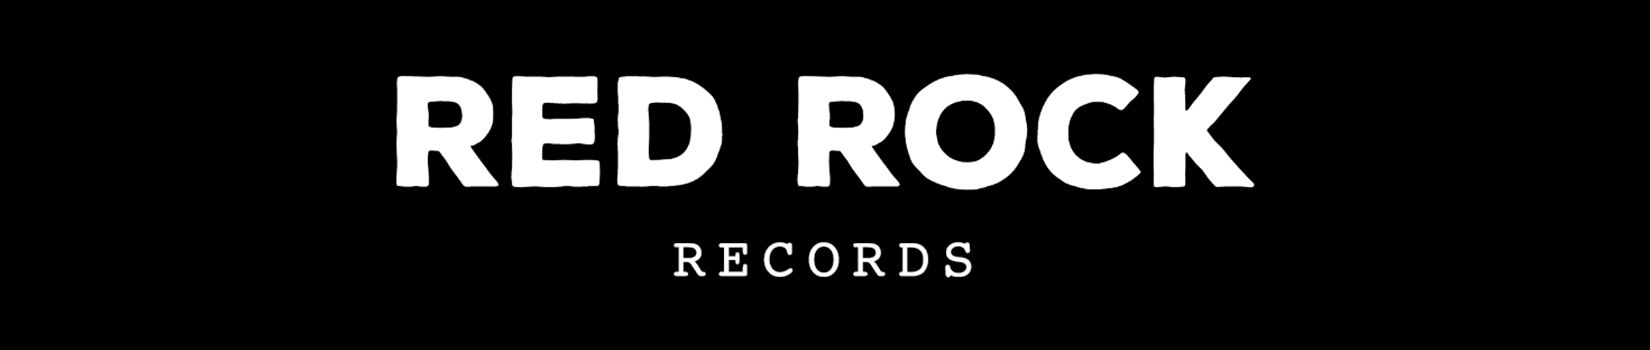 RED ROCK RECORDS